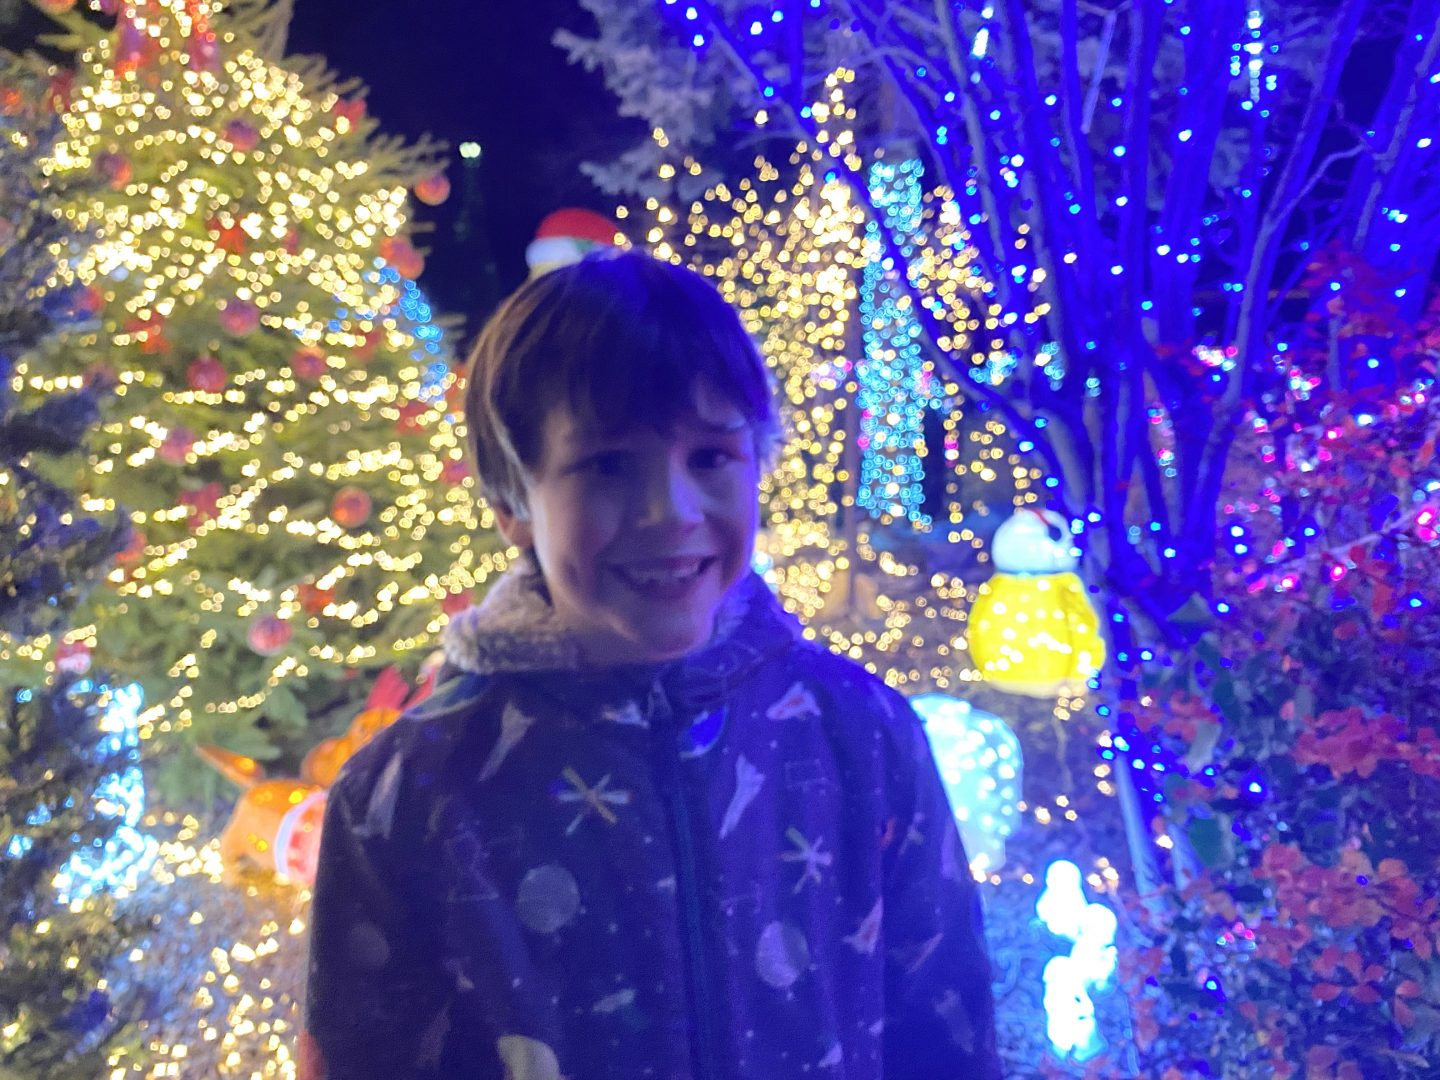 A young boy stood outside by Christmas lights on the Christmas build up